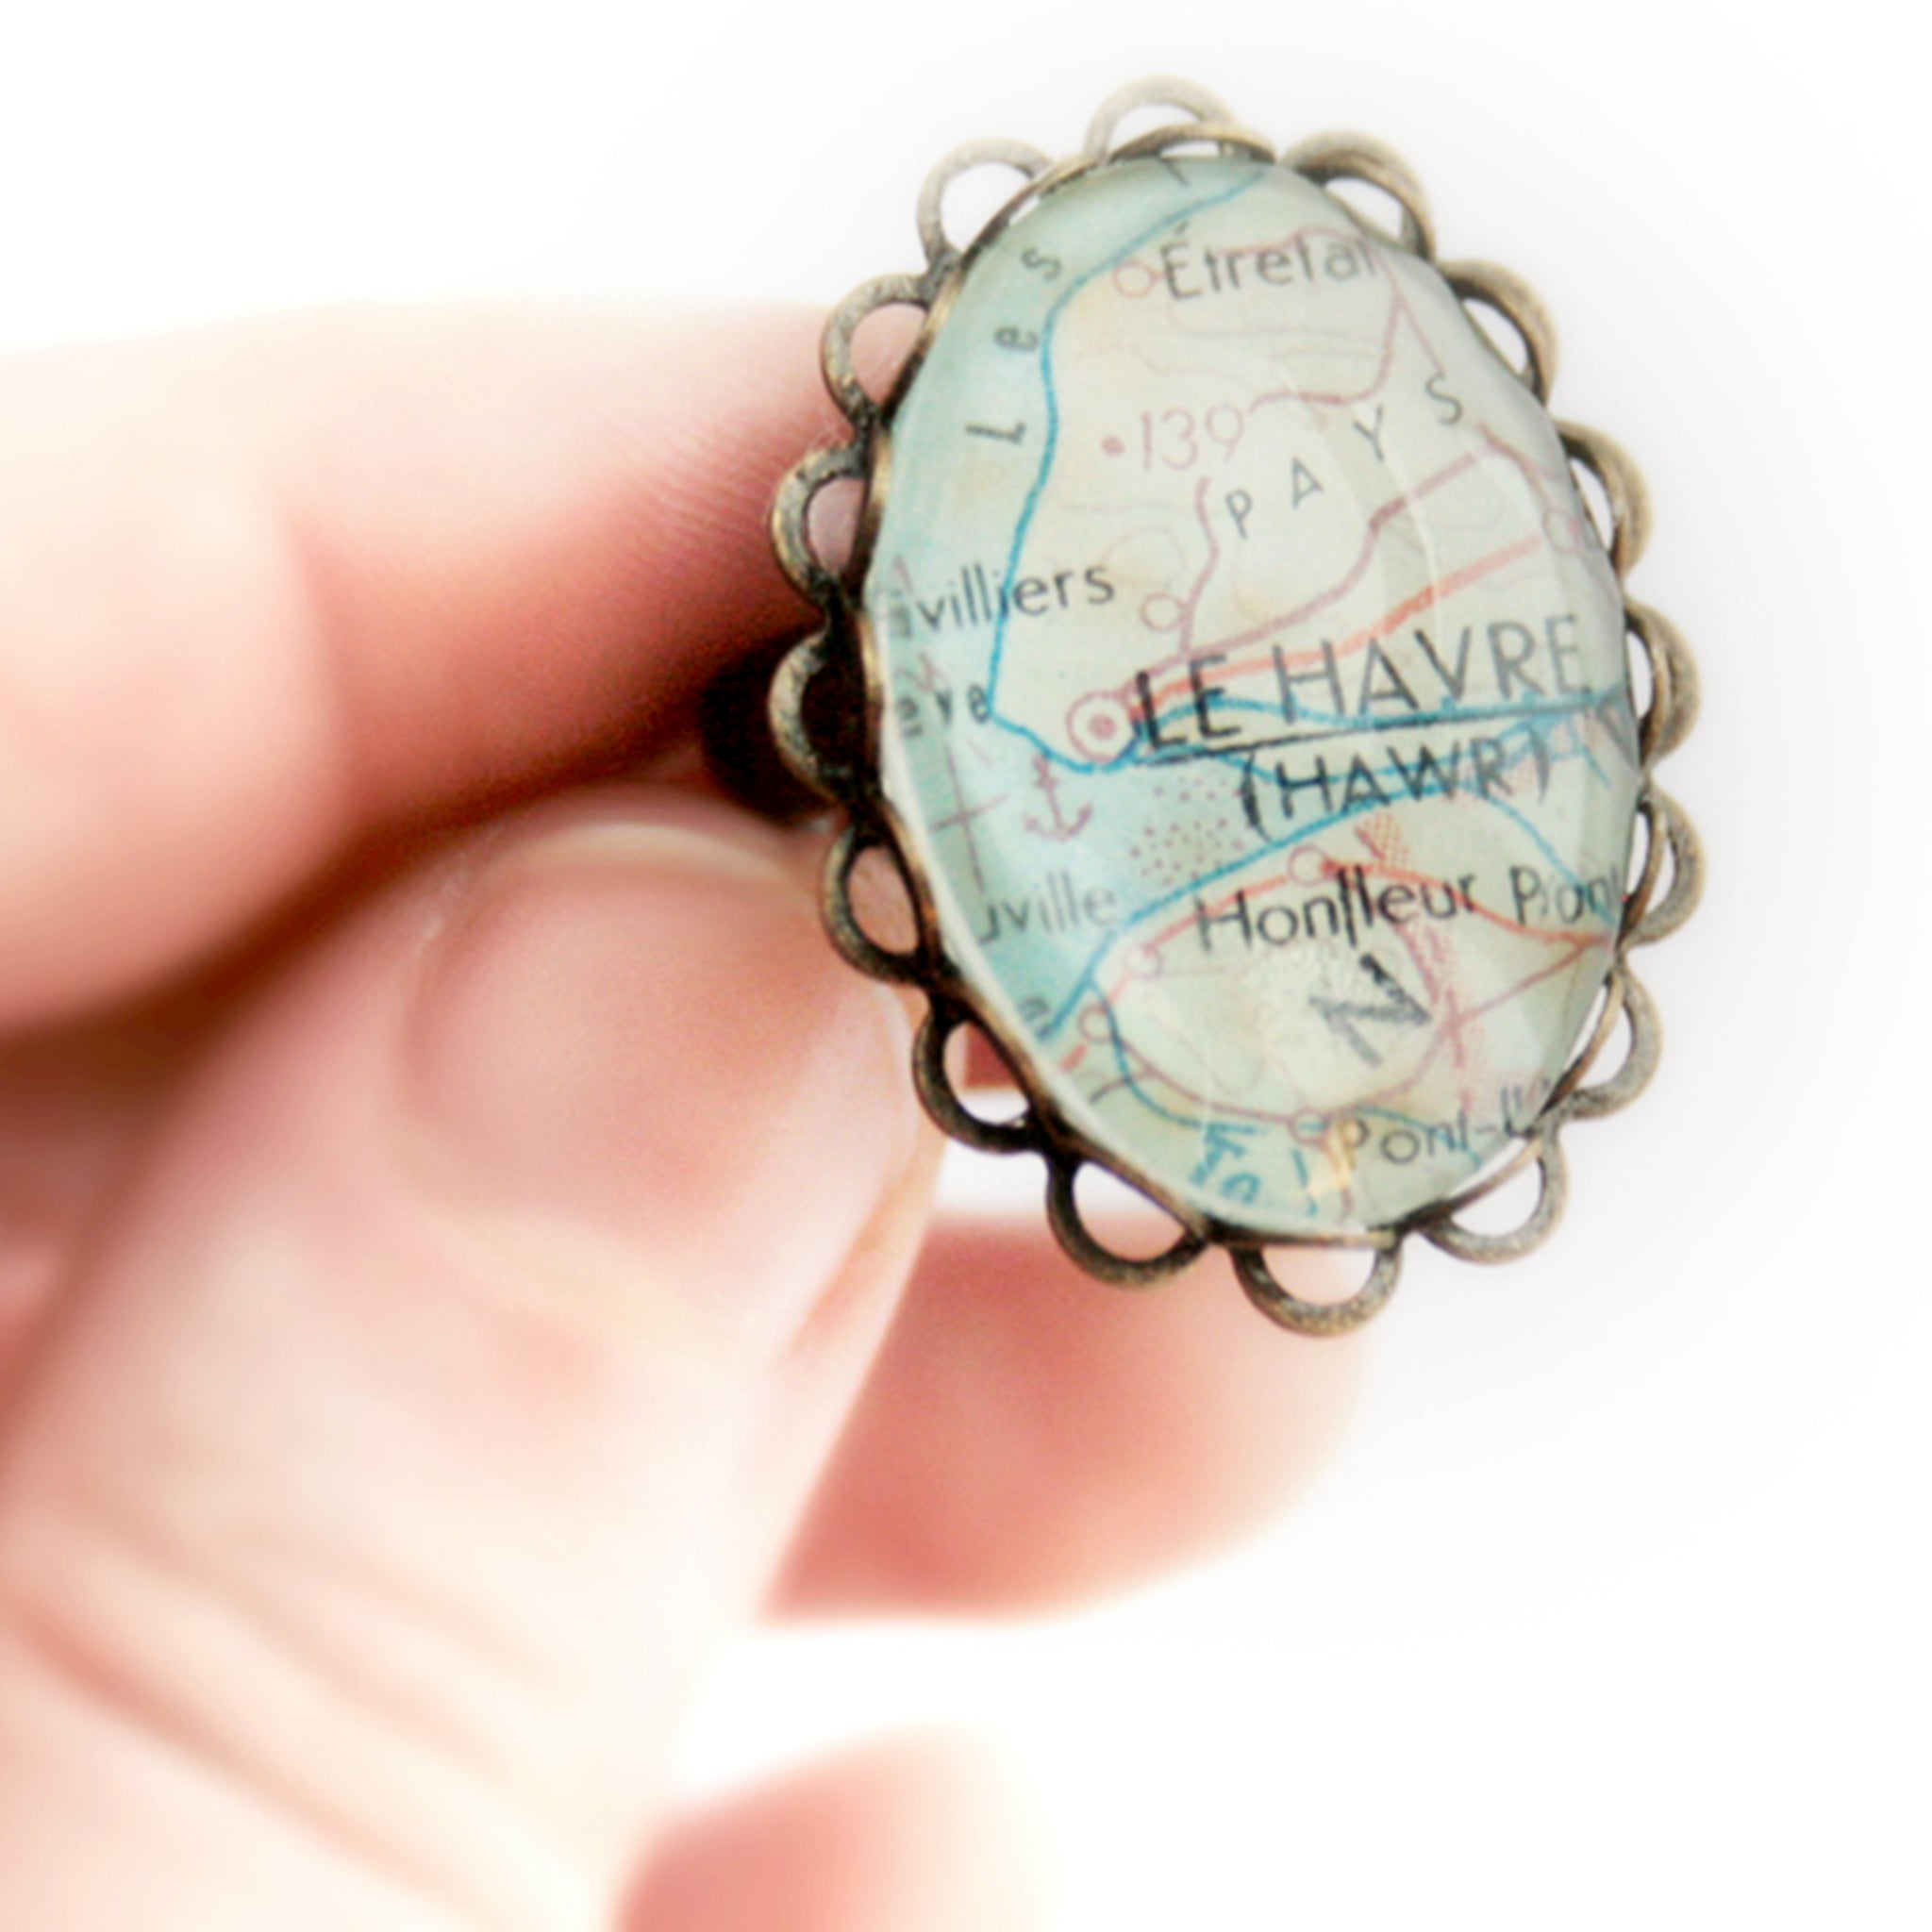 Hand holding Oval bronze personalised ring featuring map of Le Havre